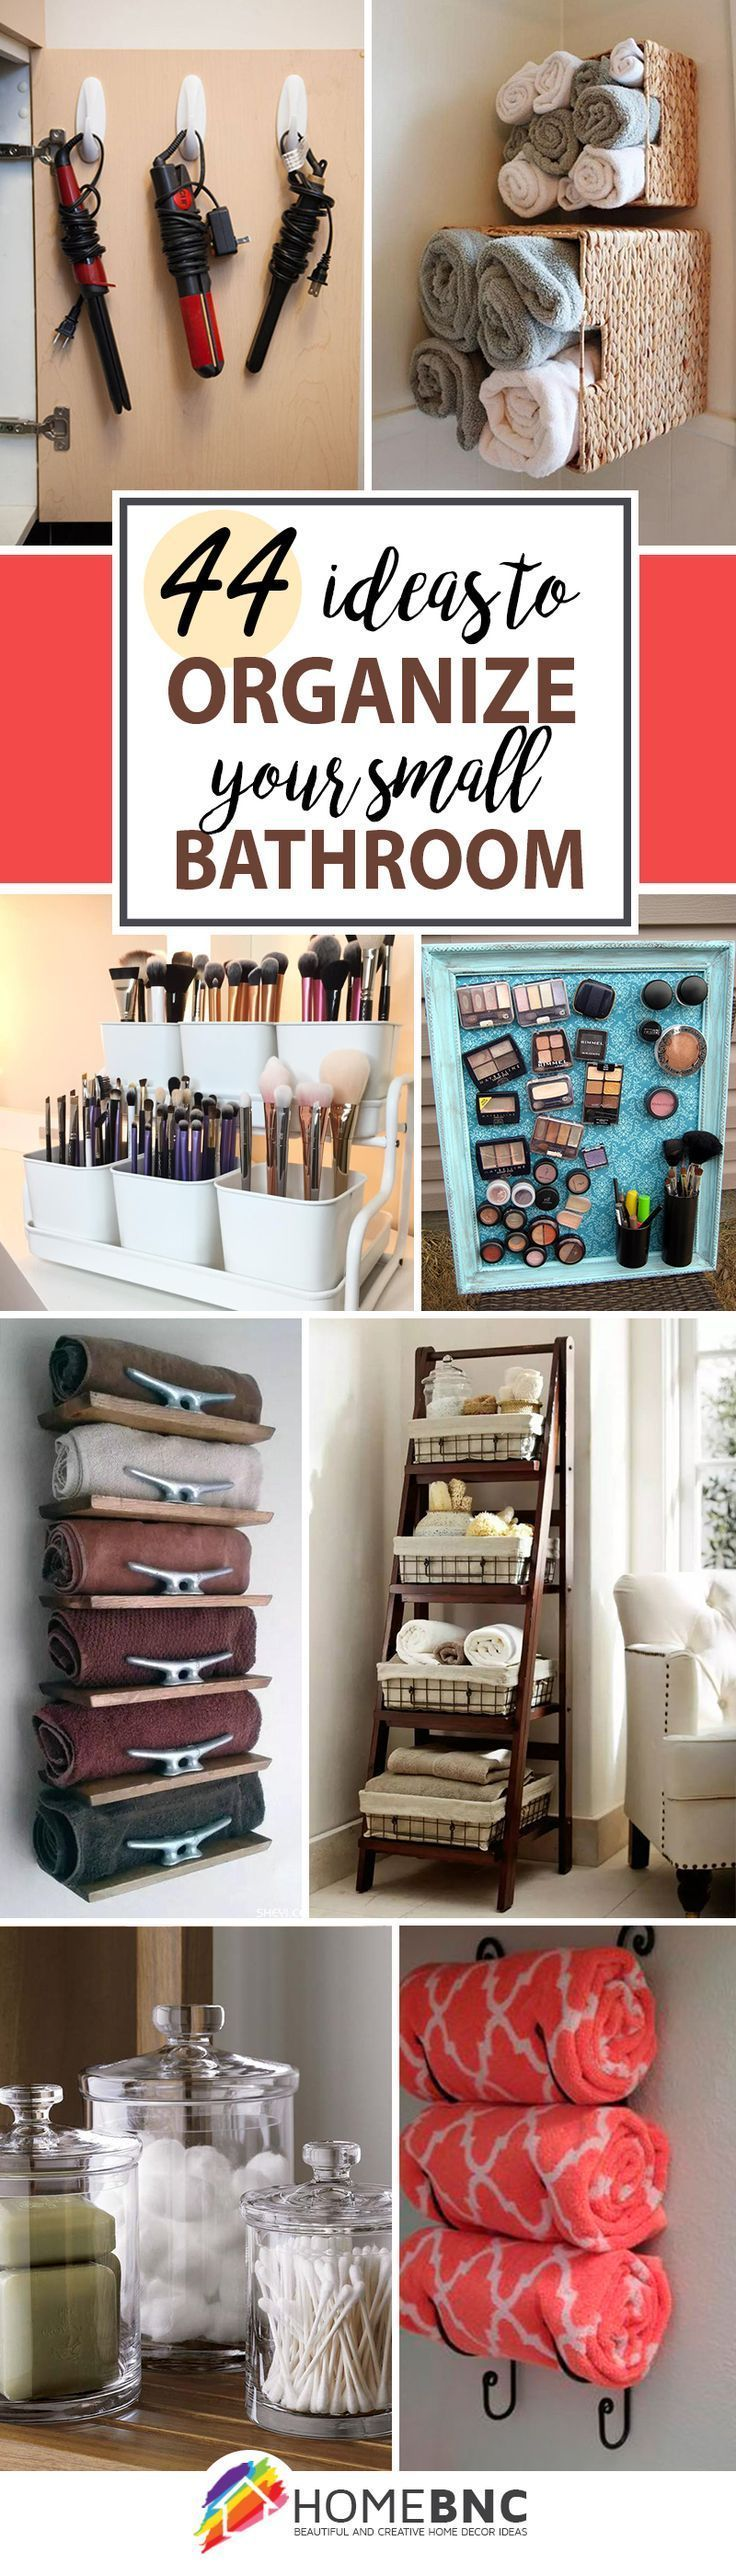 Diy bathroom decor pinterest - 44 Unique Storage Ideas For A Small Bathroom To Make Yours Bigger